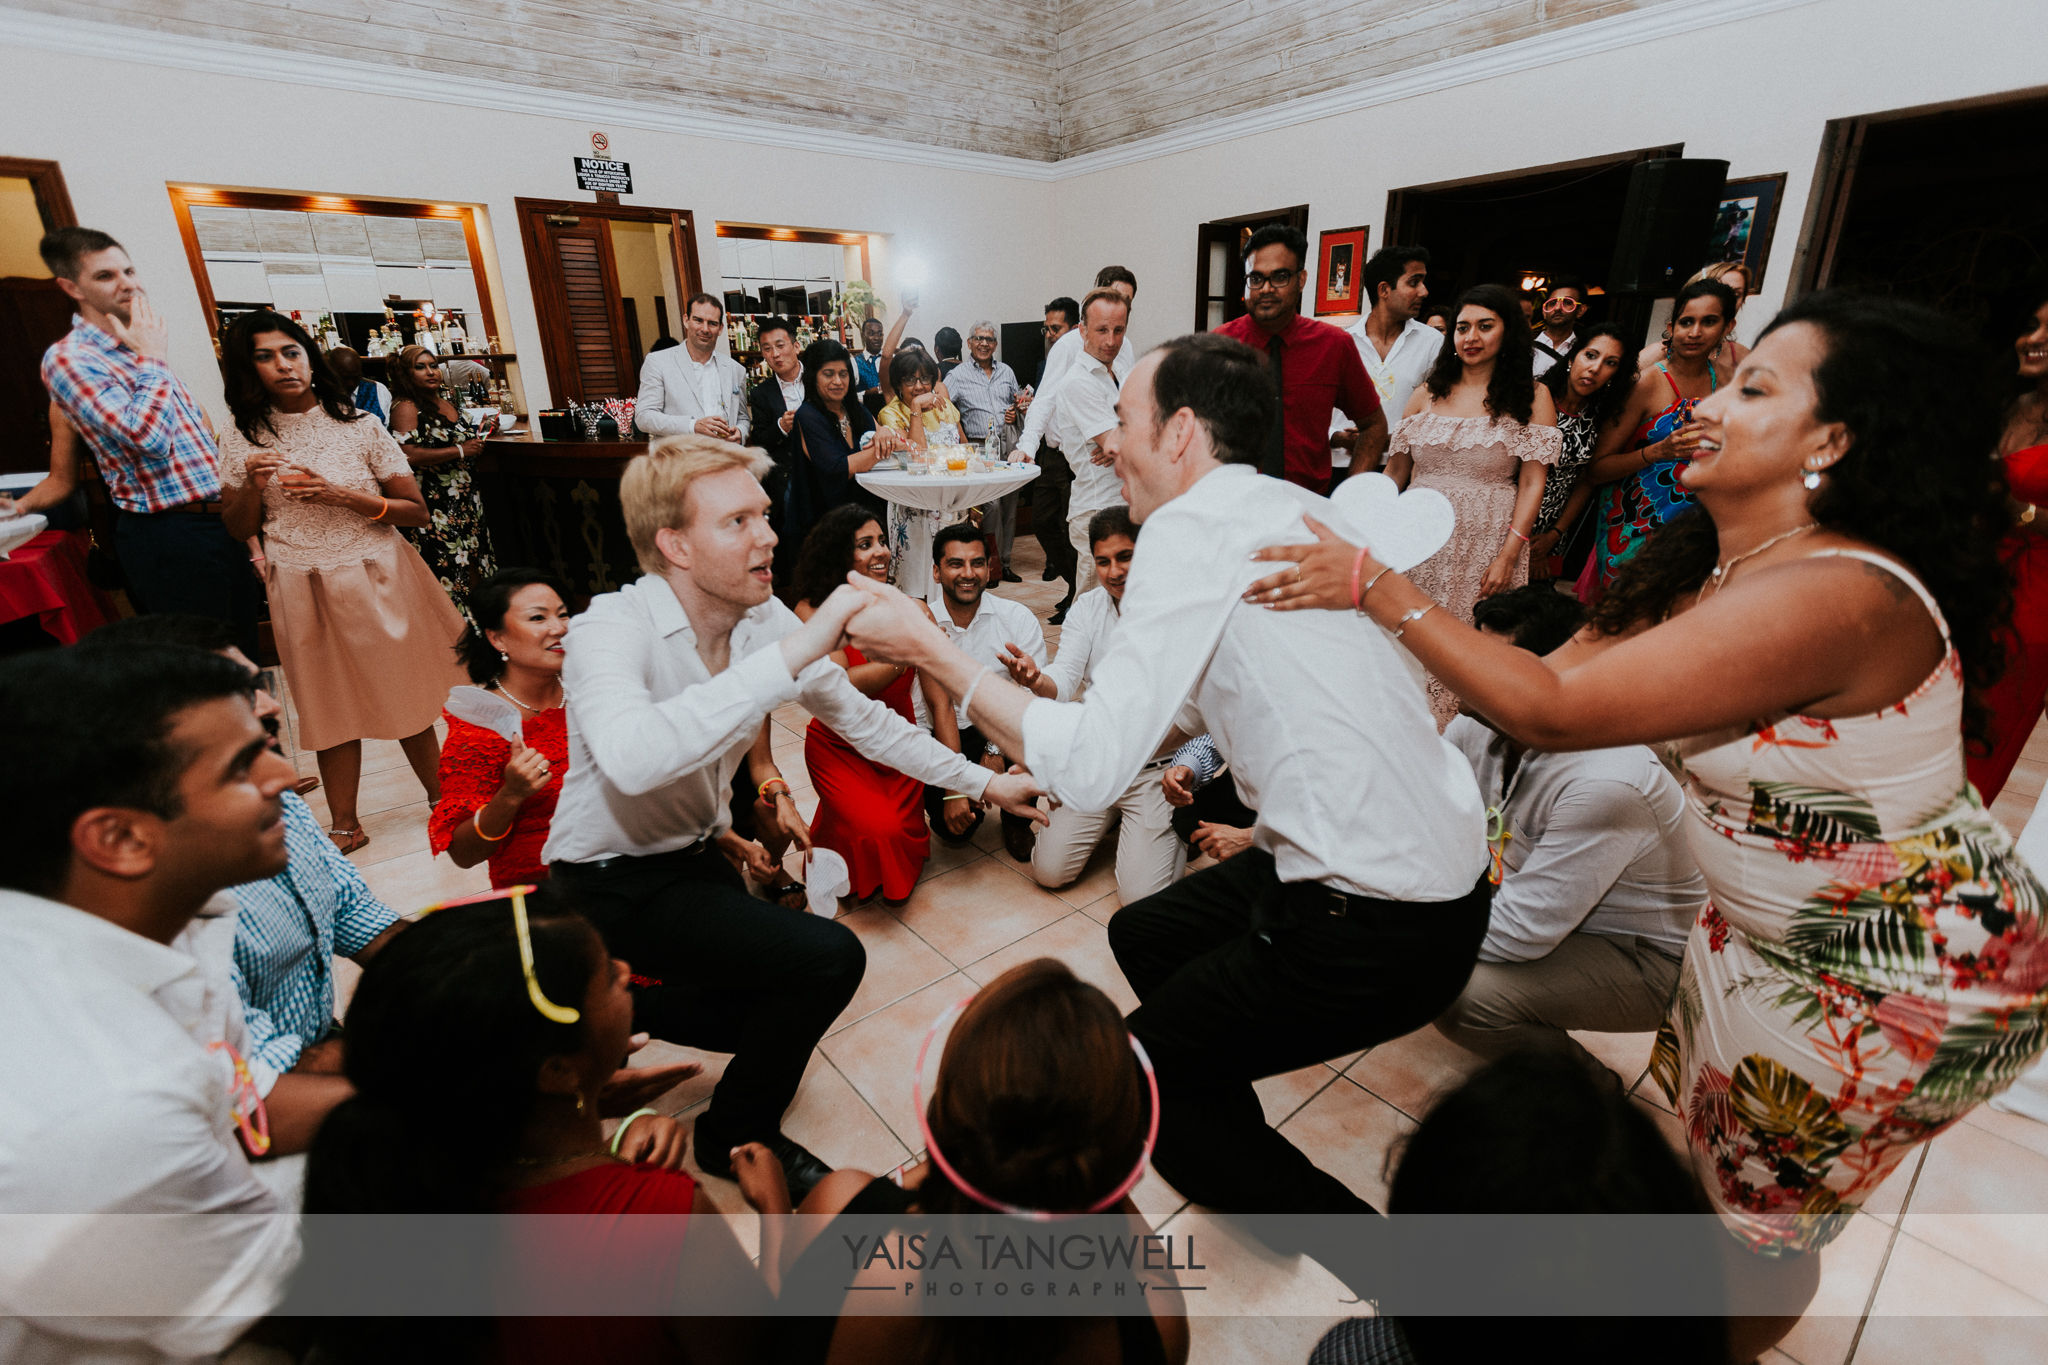 Shivana + Derk wedding in Trinidad and Tobago